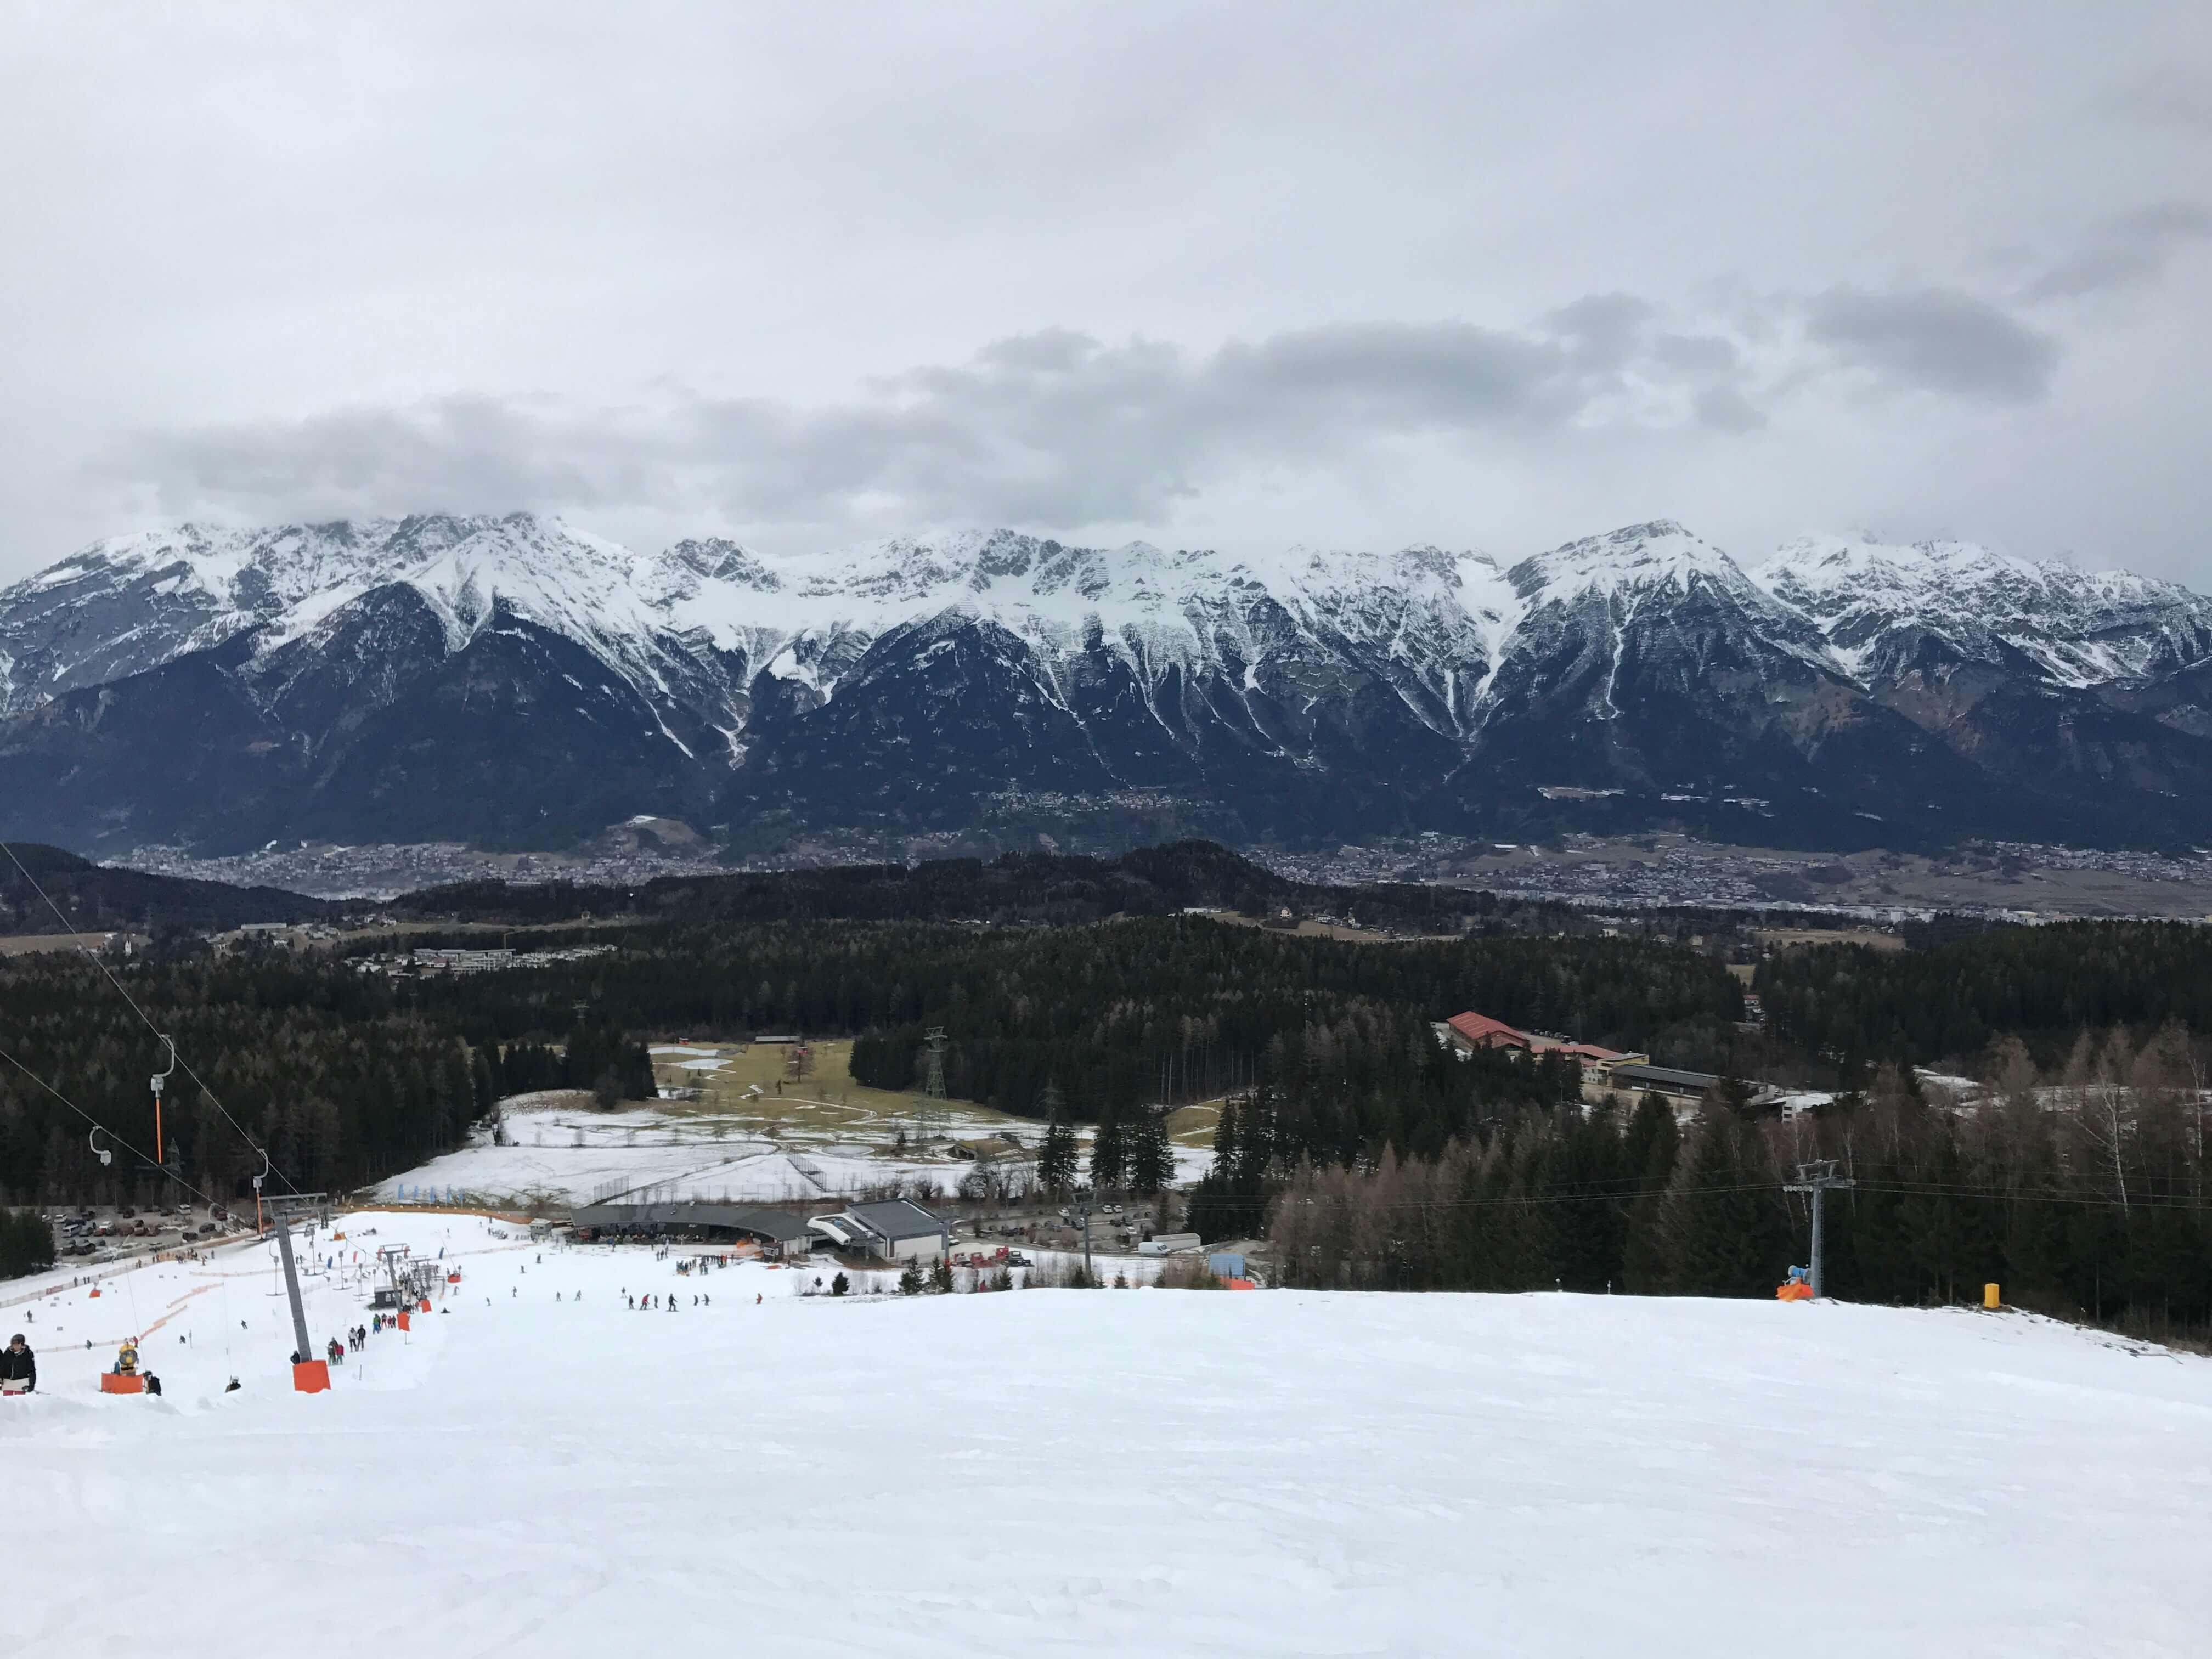 Innsbruck—Patscherkofel Ski Resort by 倍包客